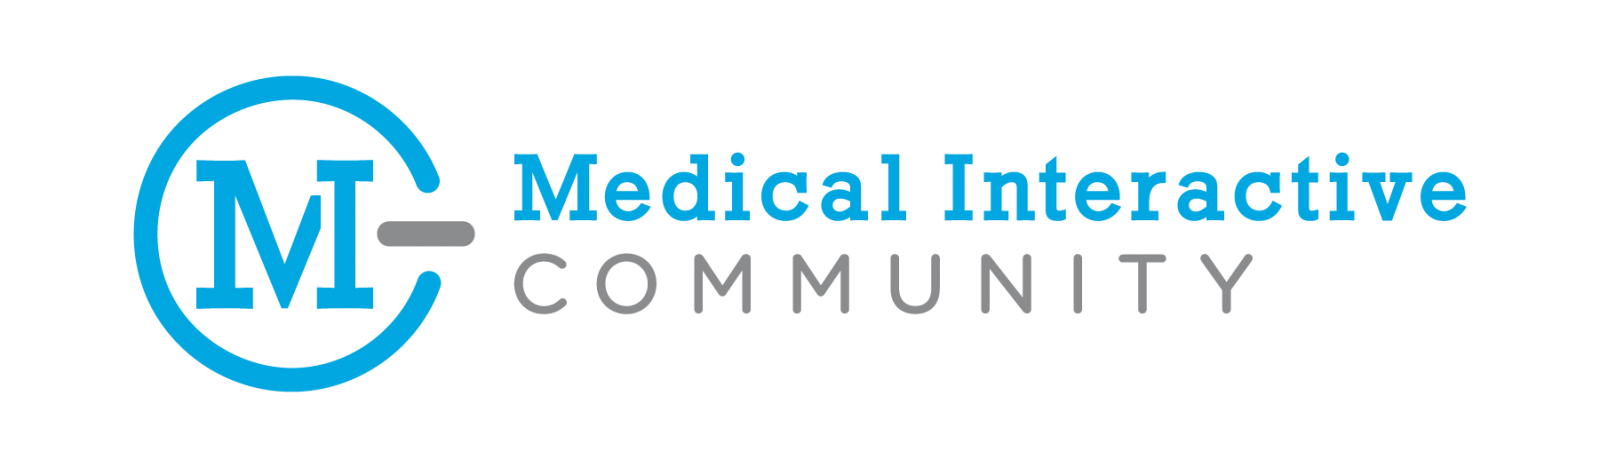 Medical Interactive Community